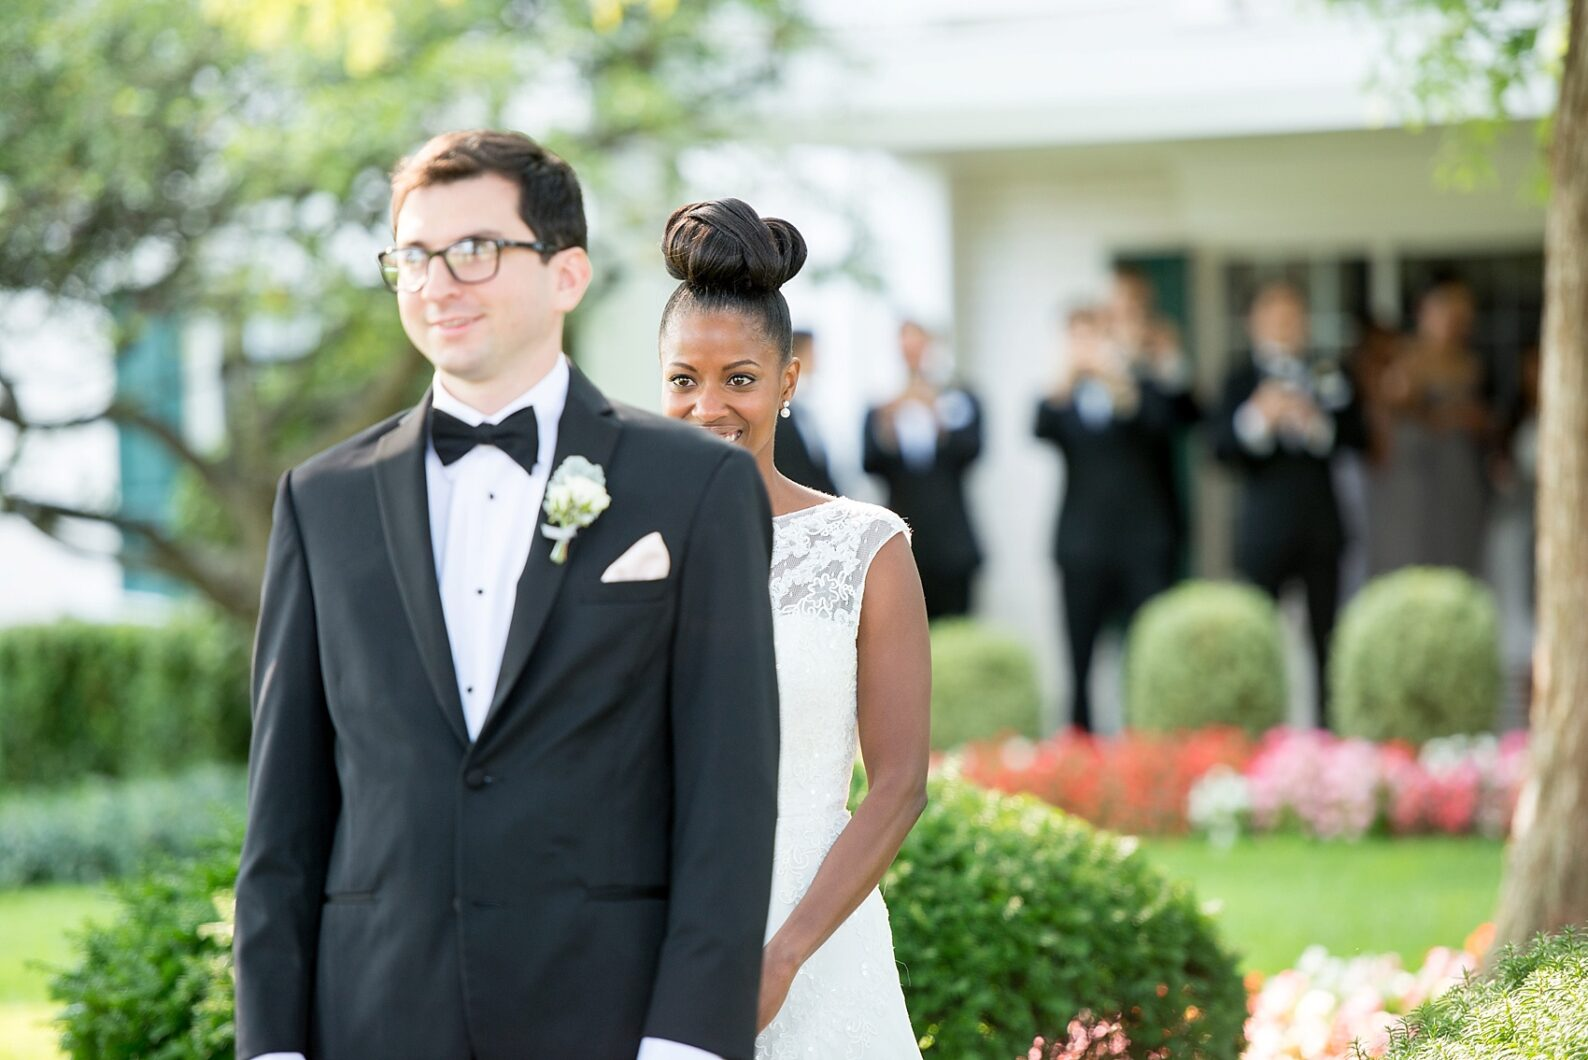 First look! Photos by Mikkel Paige Photography at The Conservatory at the Madison Hotel, New Jersey.